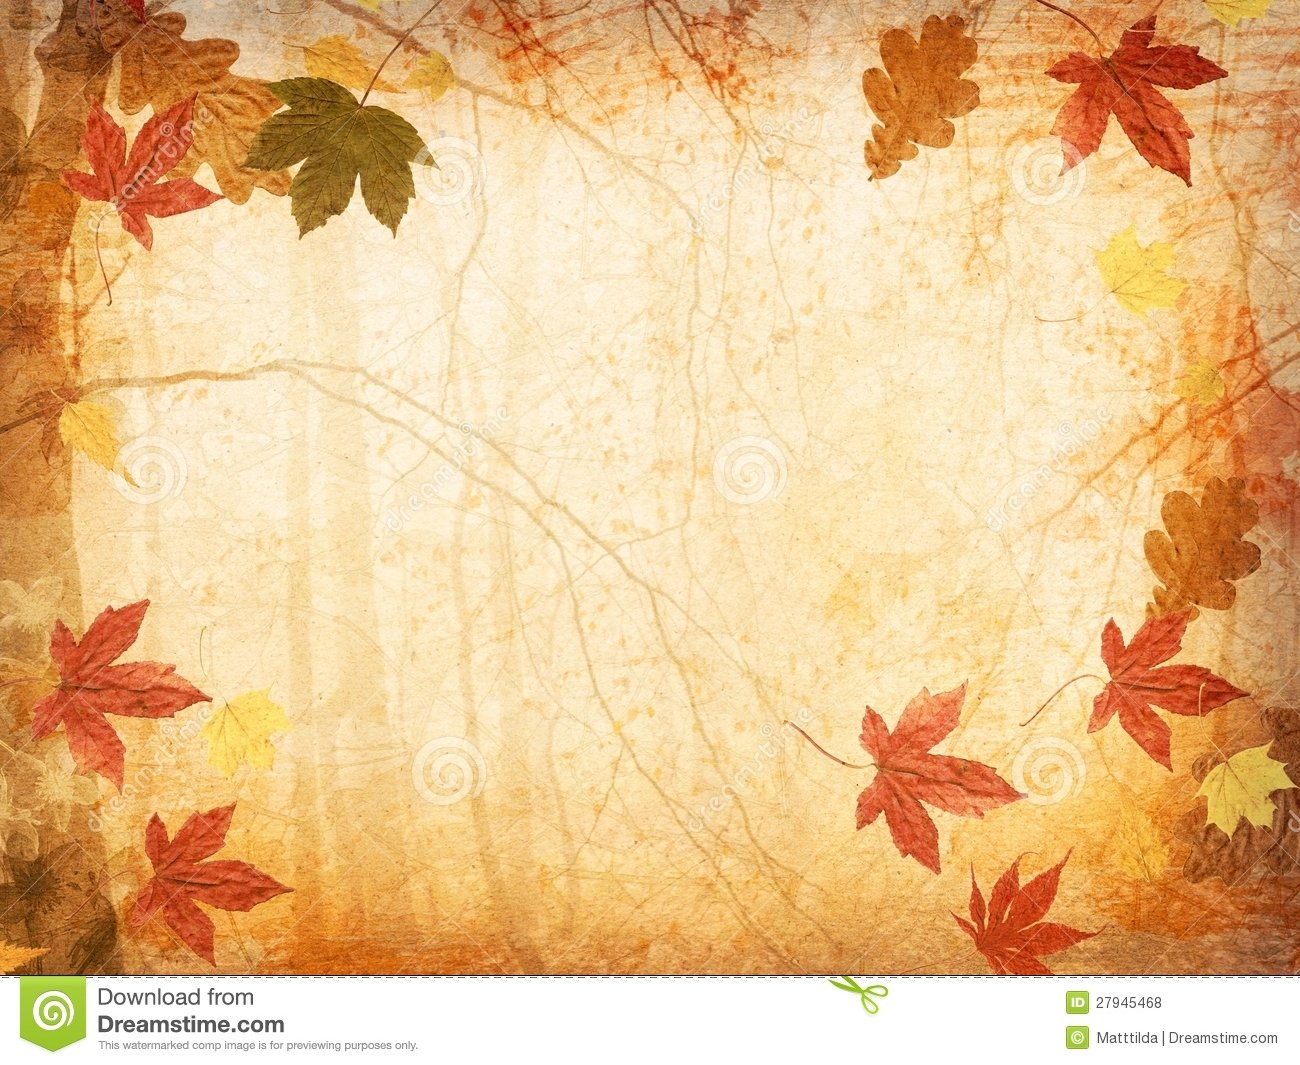 Fall Leaf Background - WallpaperSafari